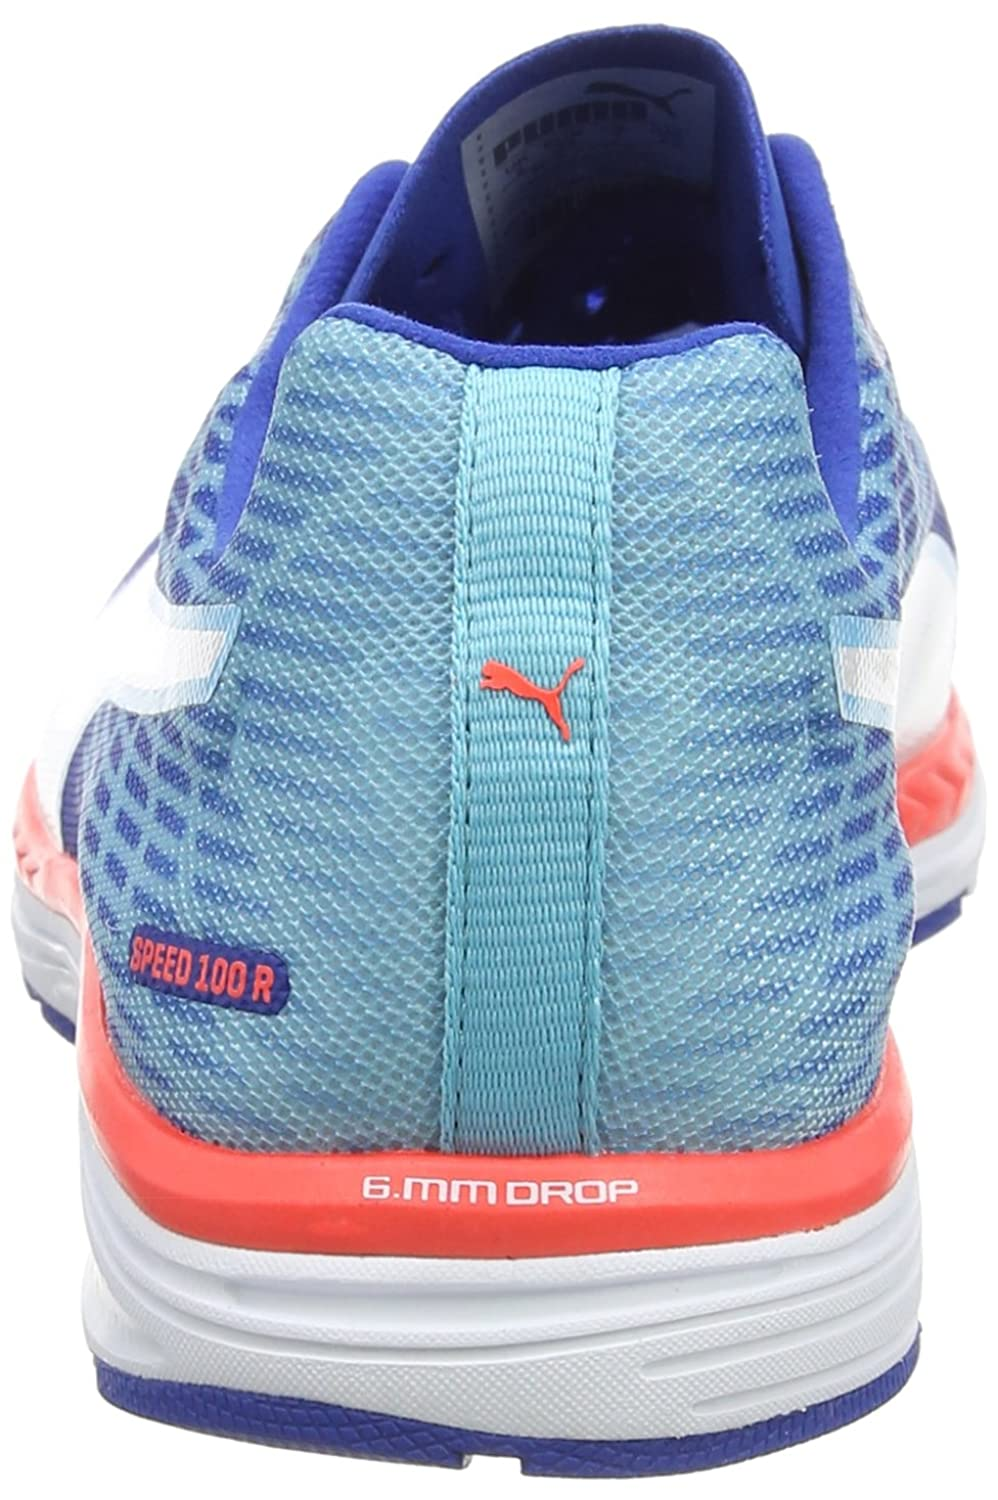 Puma Speed 100 R Ignite, Chaussures Multisport Outdoor Homme, Bleu (Lapis Blue-NRGY Turquoise-White), 41 EU